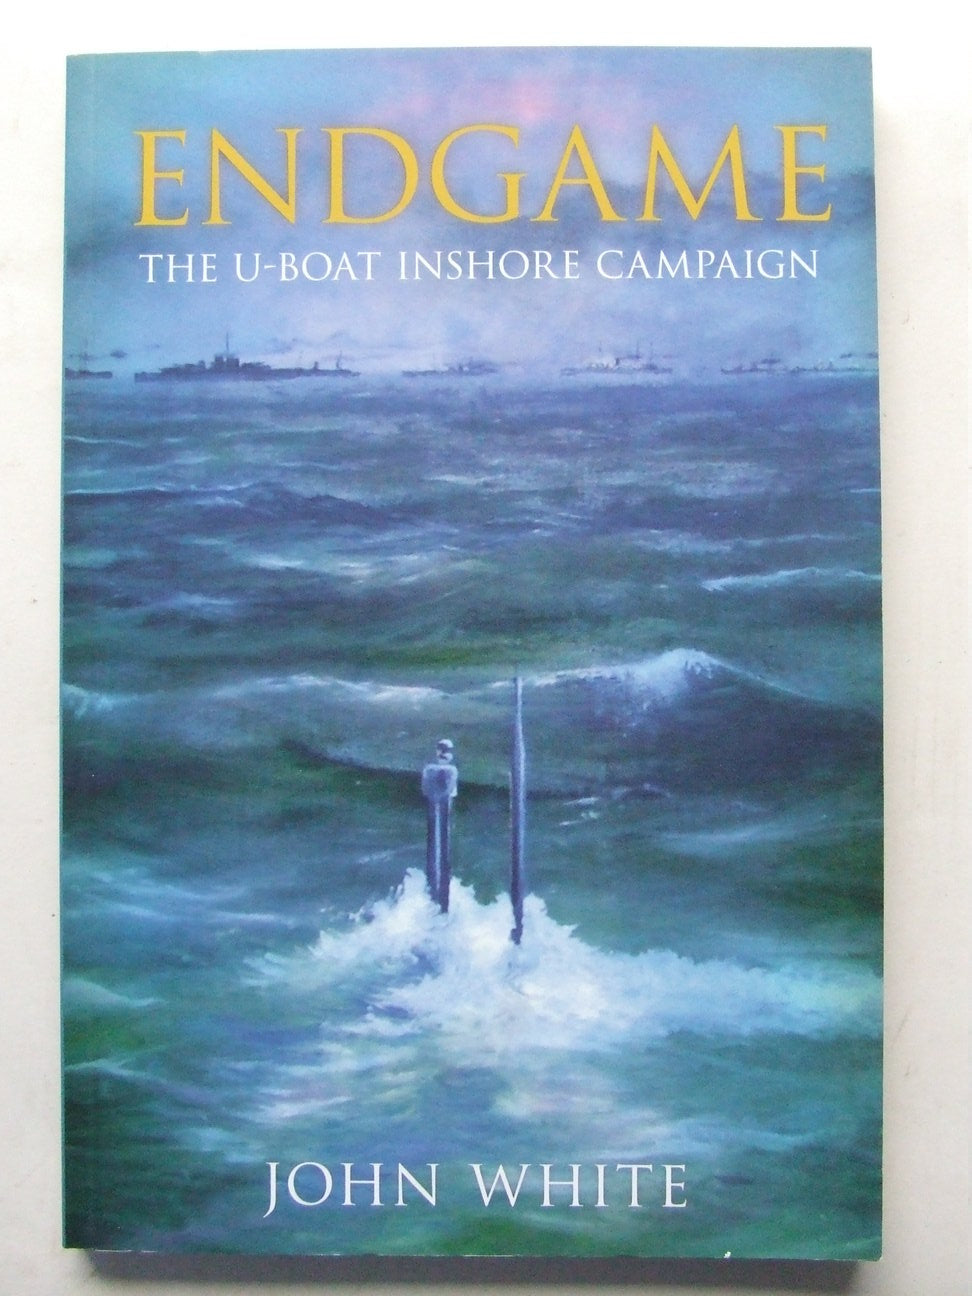 Endgame, the u-boat inshore campaign